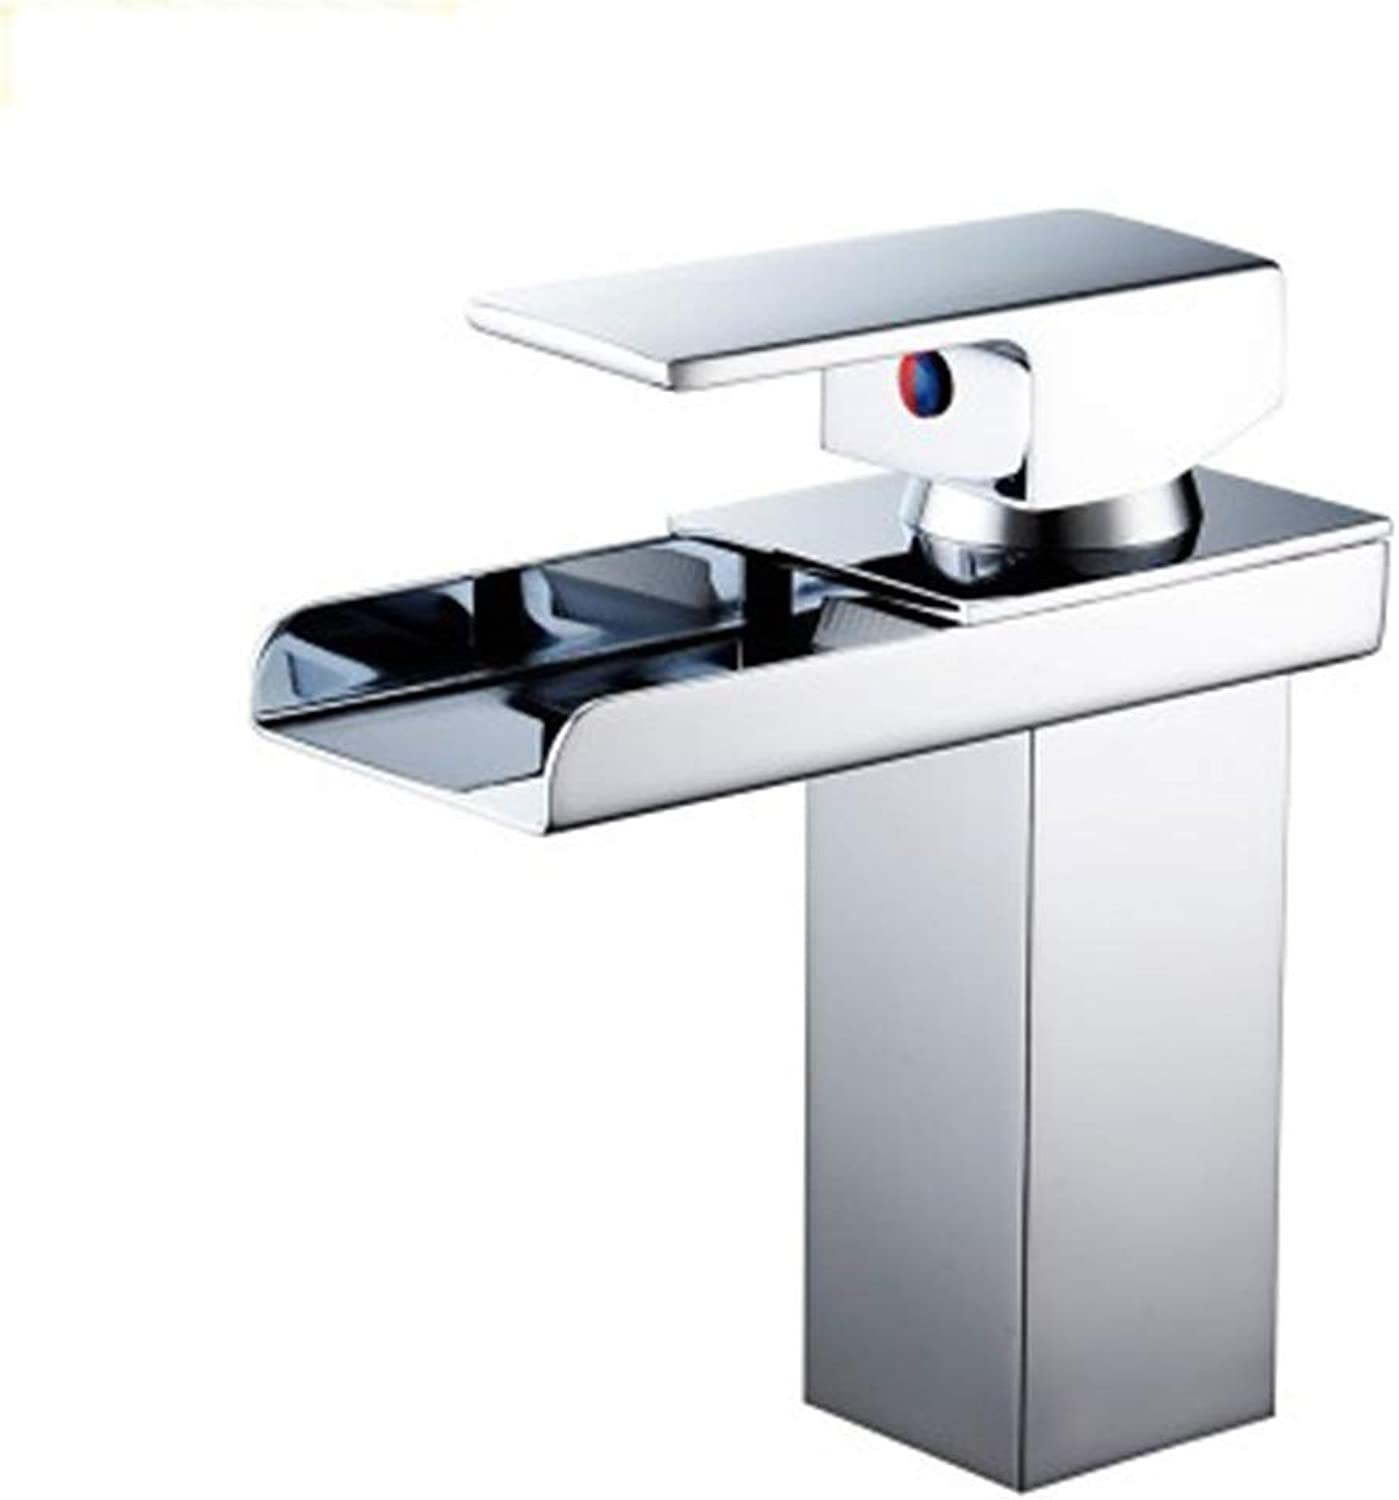 HARDY-YI Water-tap Sink Faucet Waterfall Faucet Hot Export Faucet Faucet Pot Filled Faucet Copper Waterfall Kitchen Faucet -0885